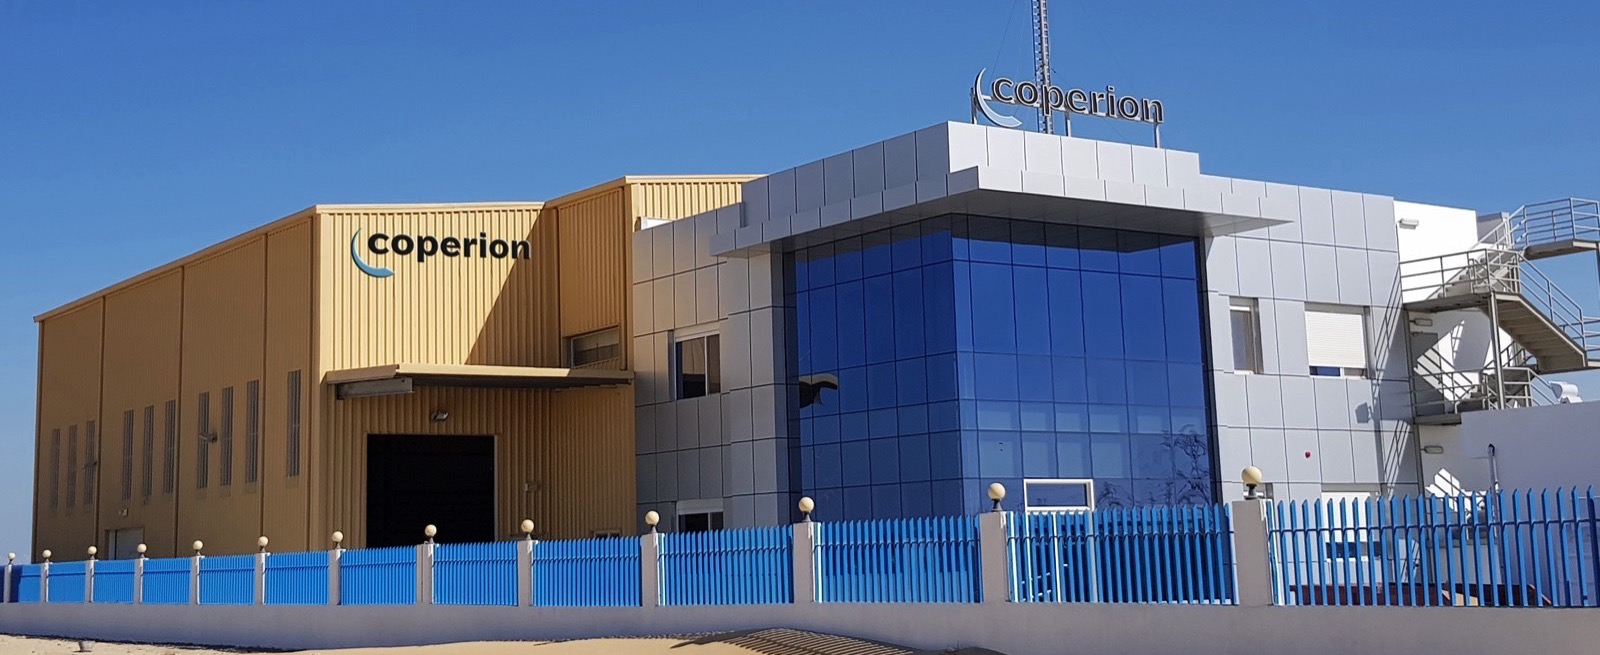 Coperion Middle East celebrates opening of new Service Center